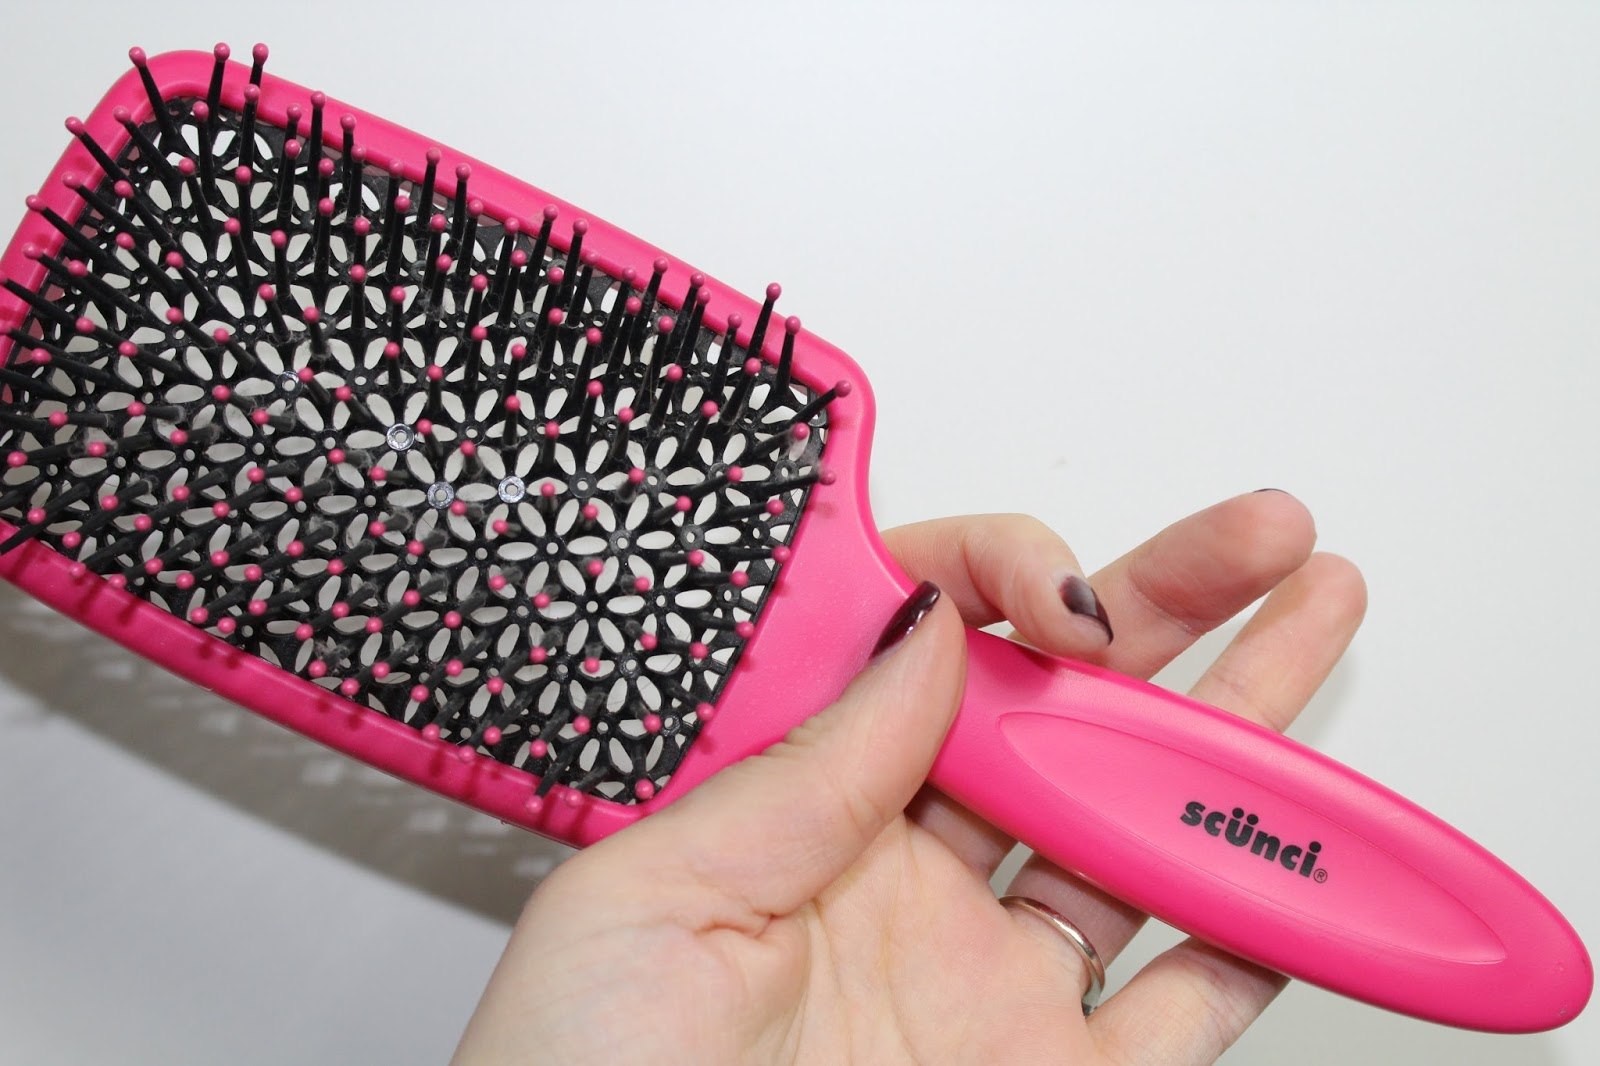 Scunci vented hairbrush